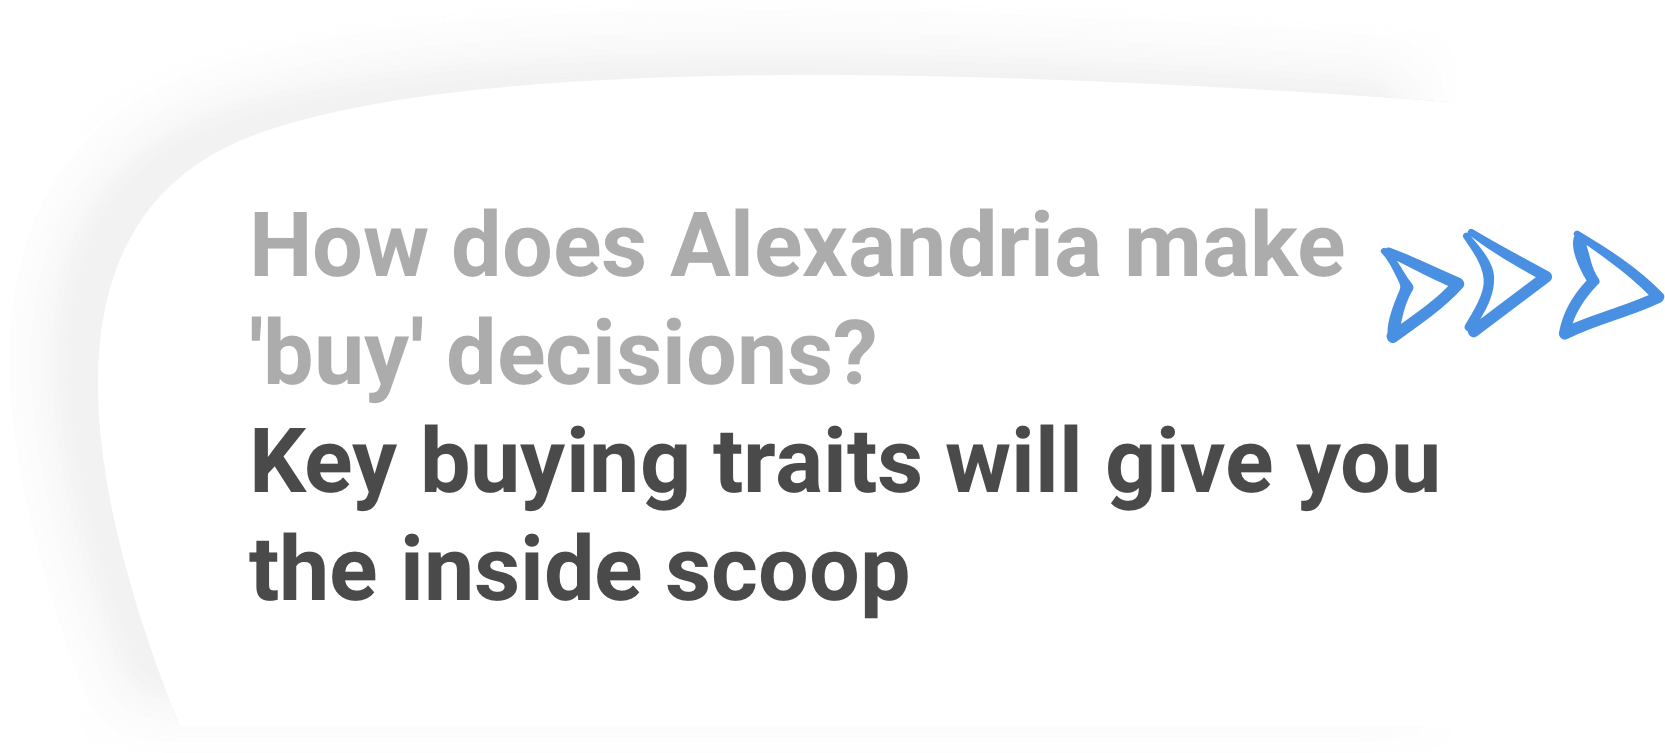 How does Alexandria make 'buy' decisions? Key buying traits give you the inside scoop